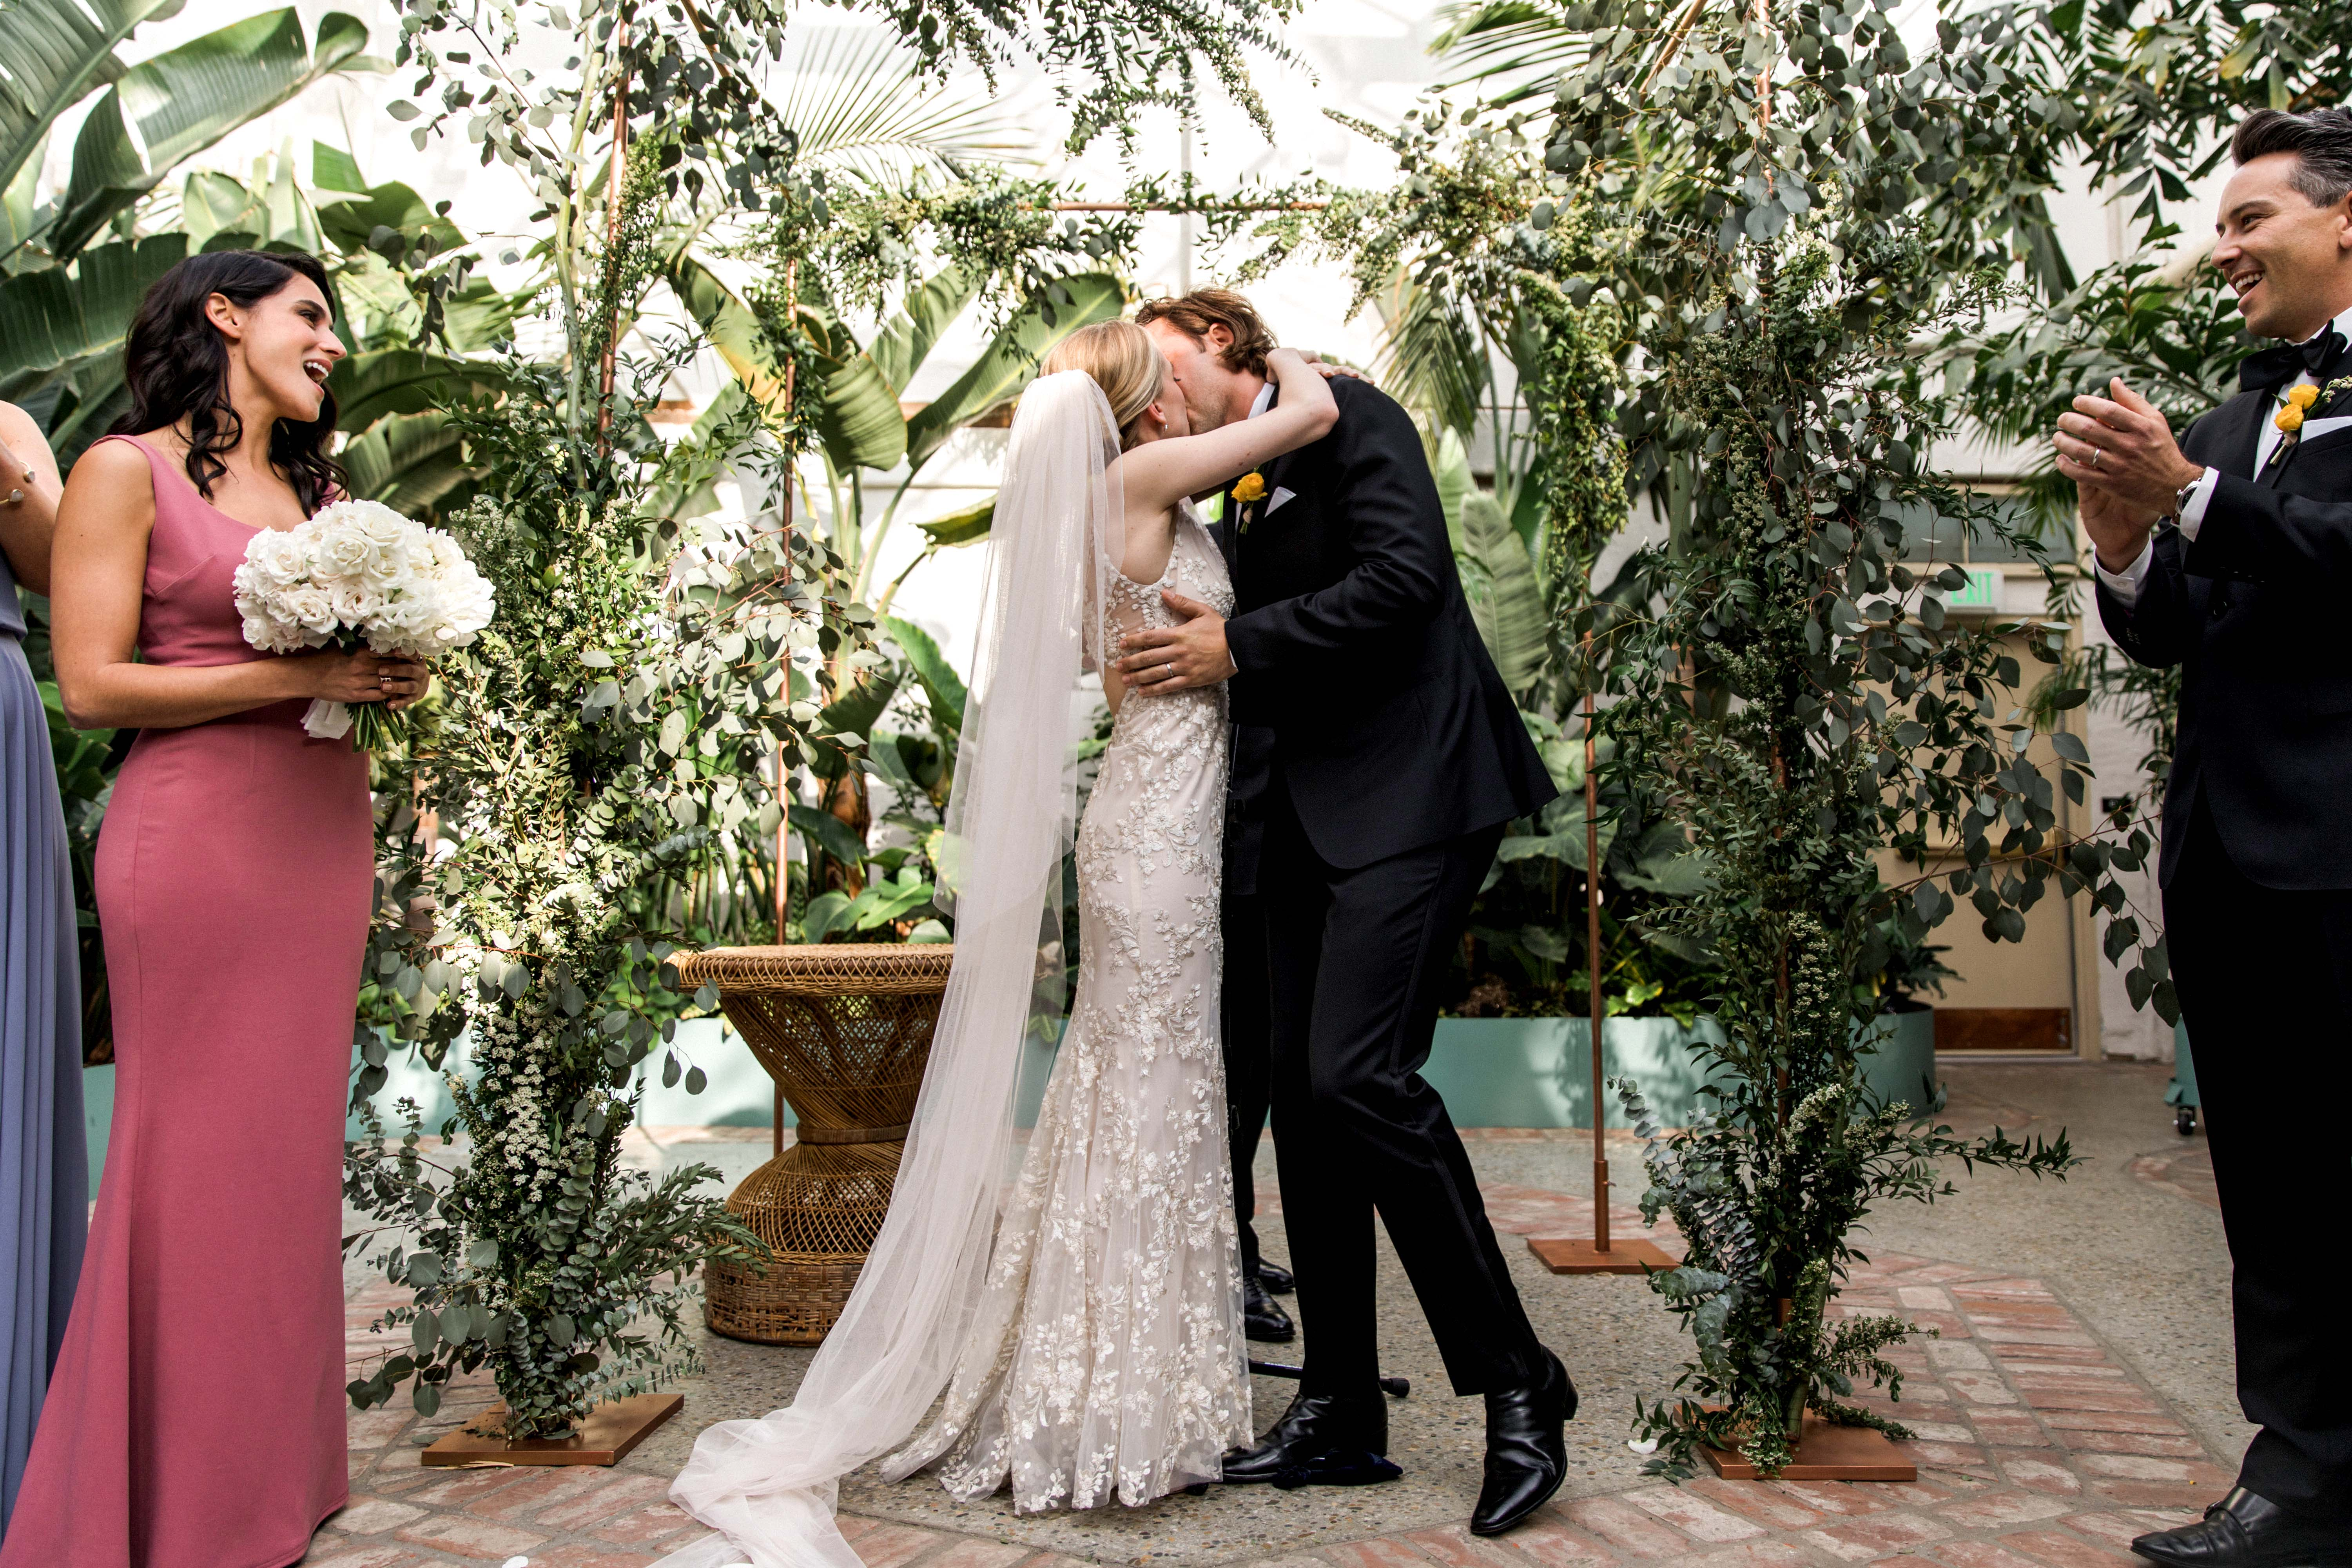 bride and groom kiss ceremony plants backdrop